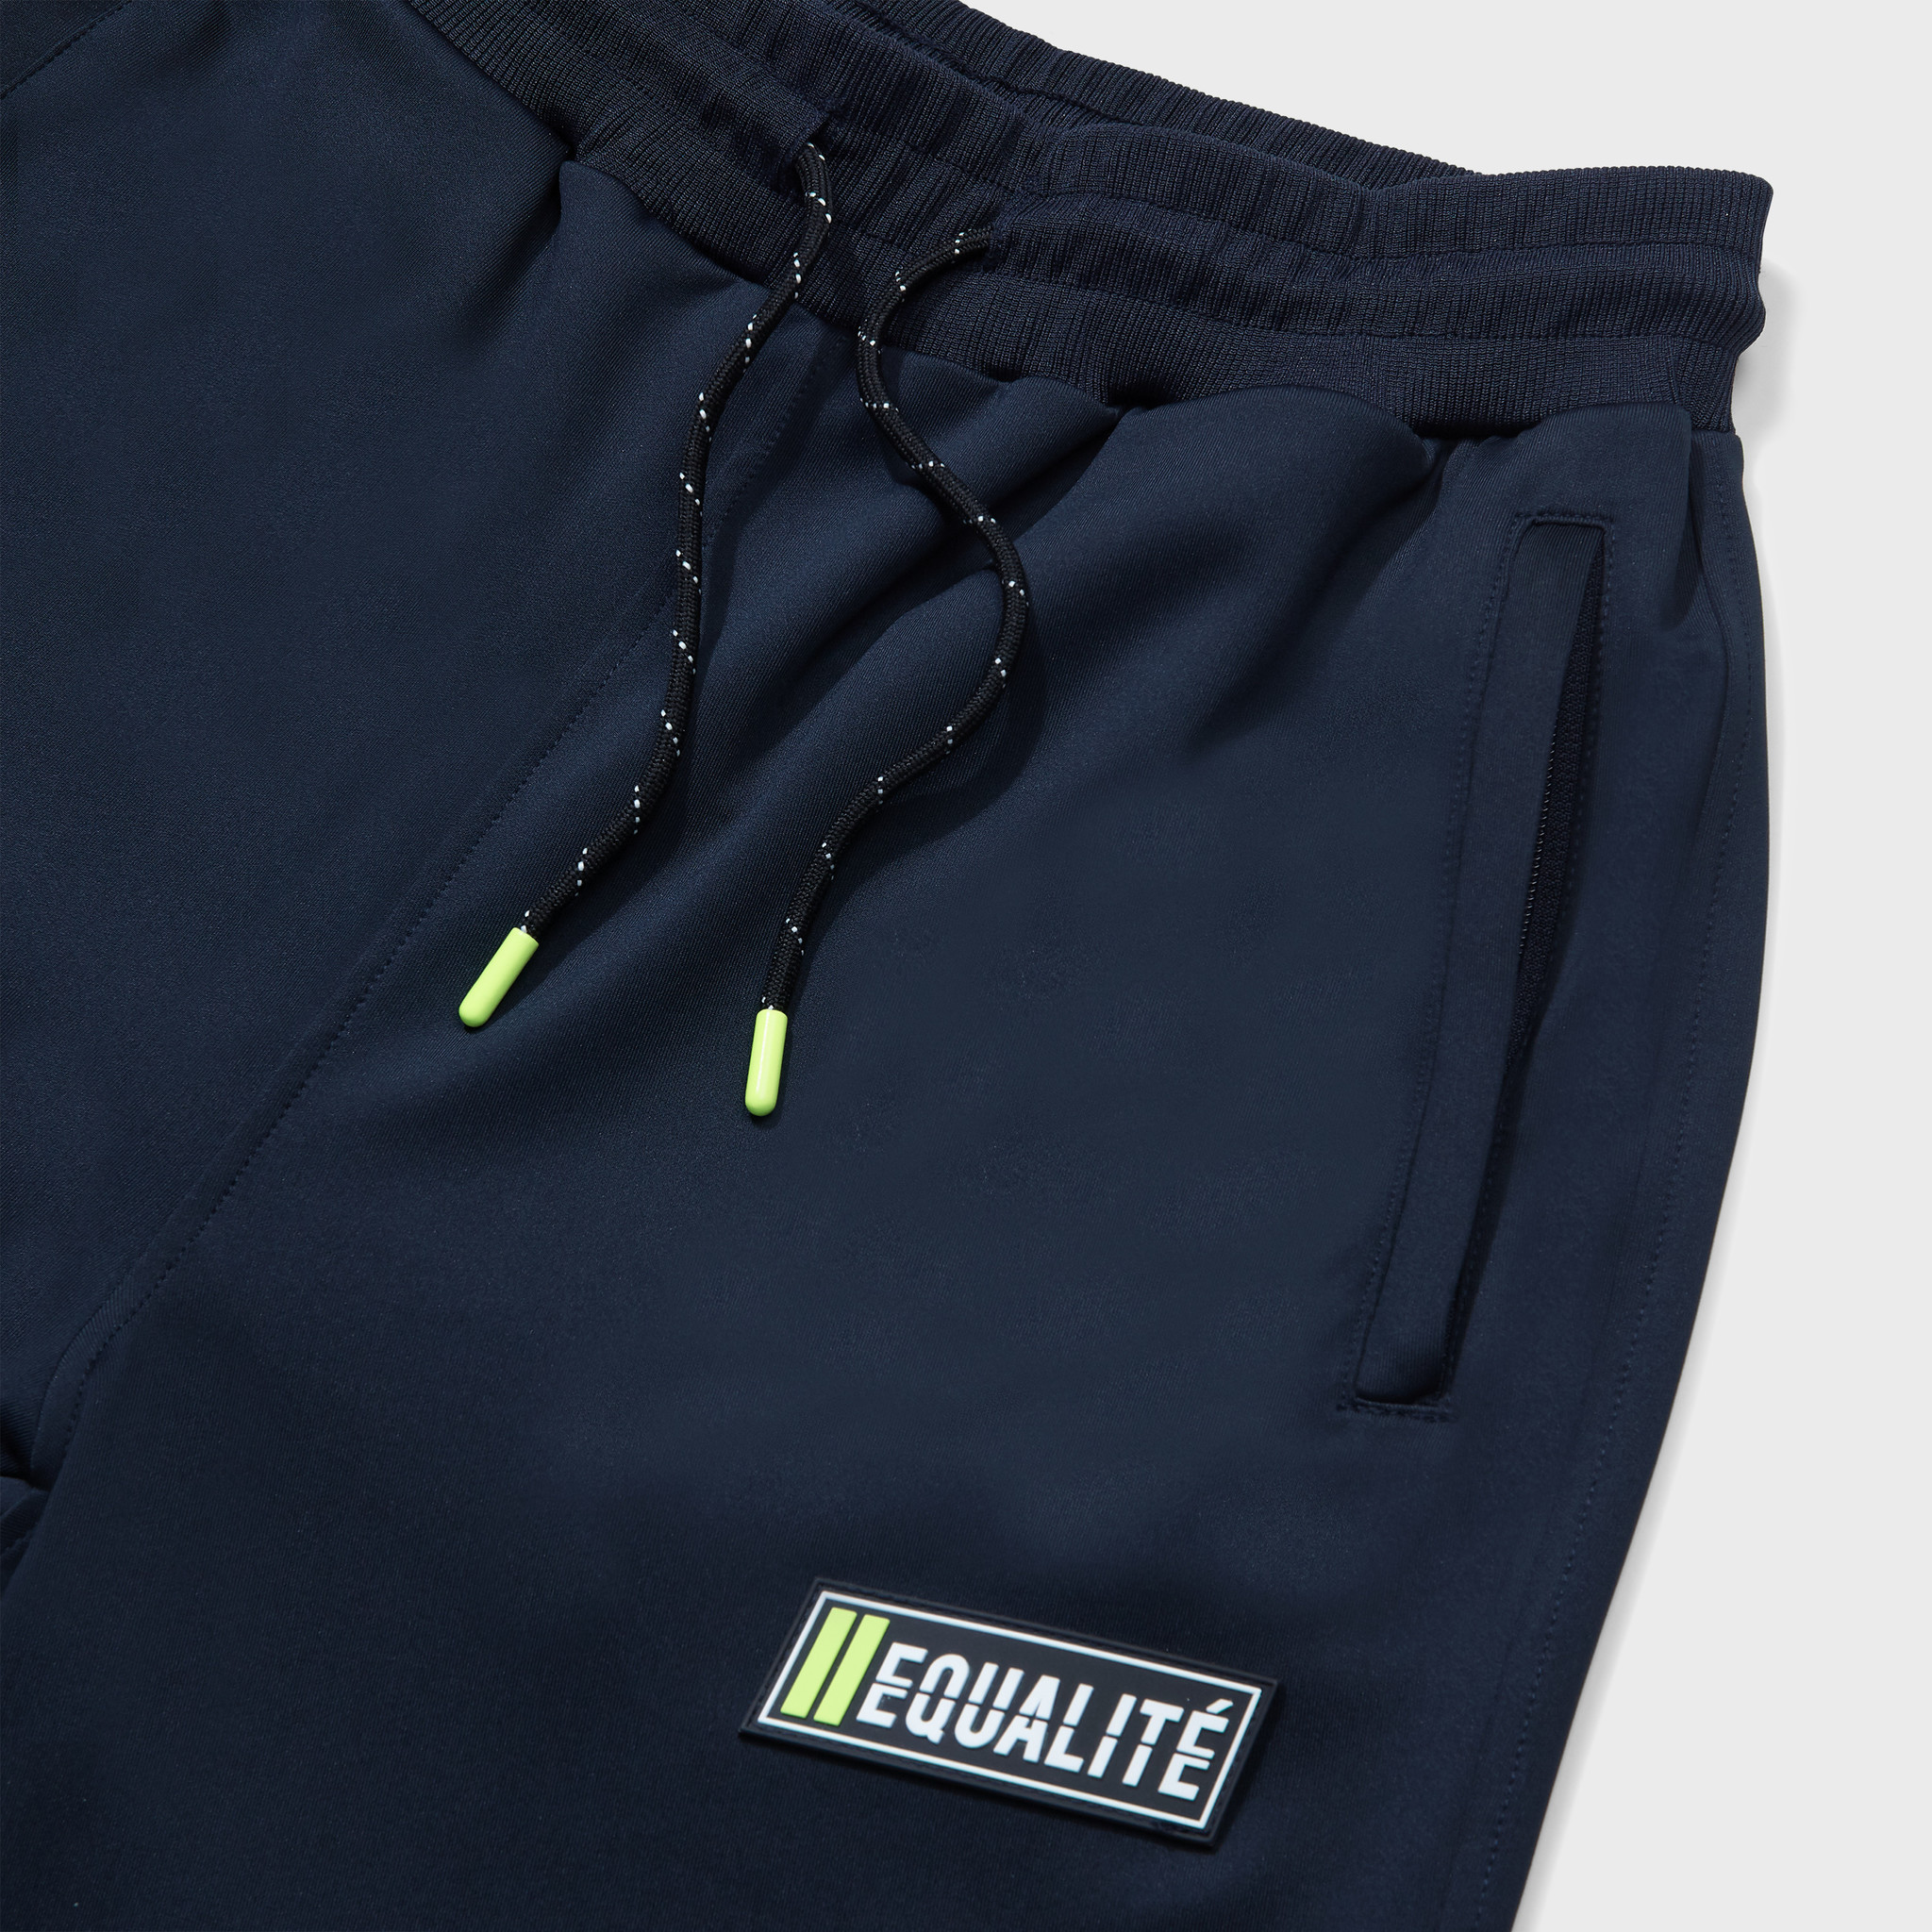 FUTURE POLYESTER TRACKSUIT NAVY & LIGHT BLUE-6